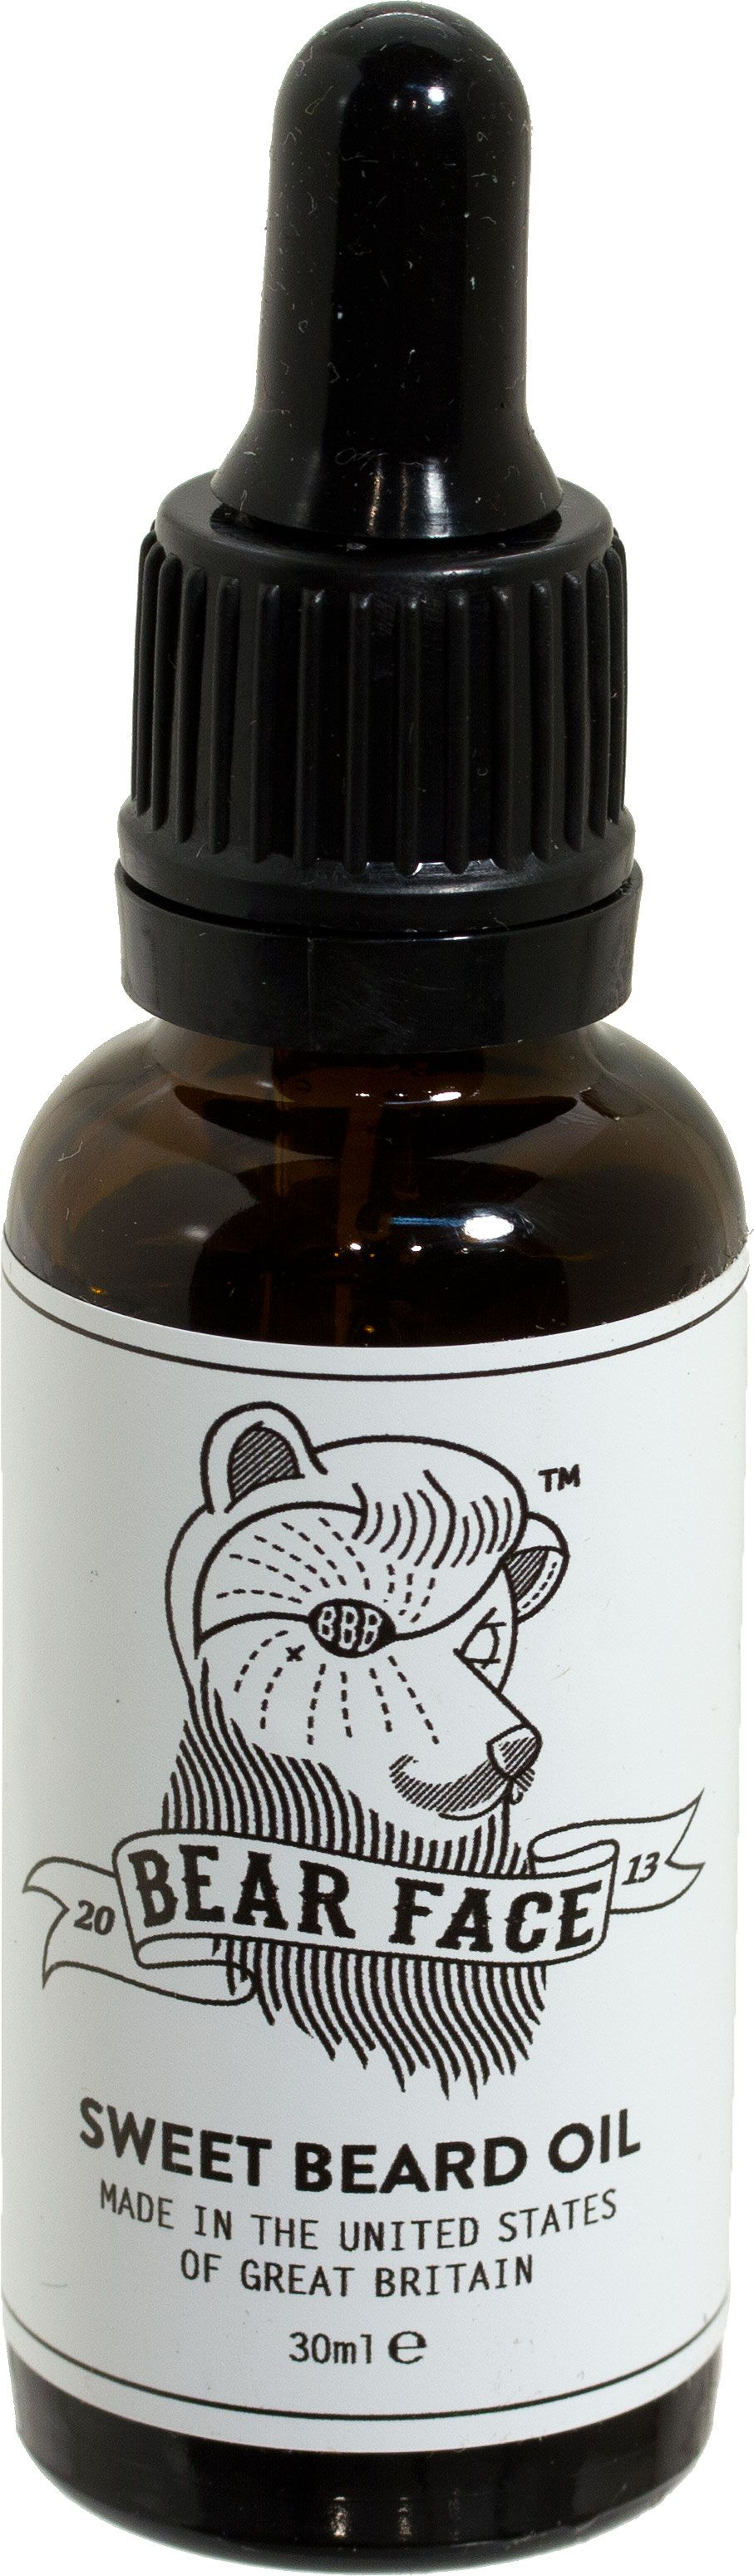 Bear Face Sweet Beard Oil for All Faces, 30ml Eye Dropper Bottle